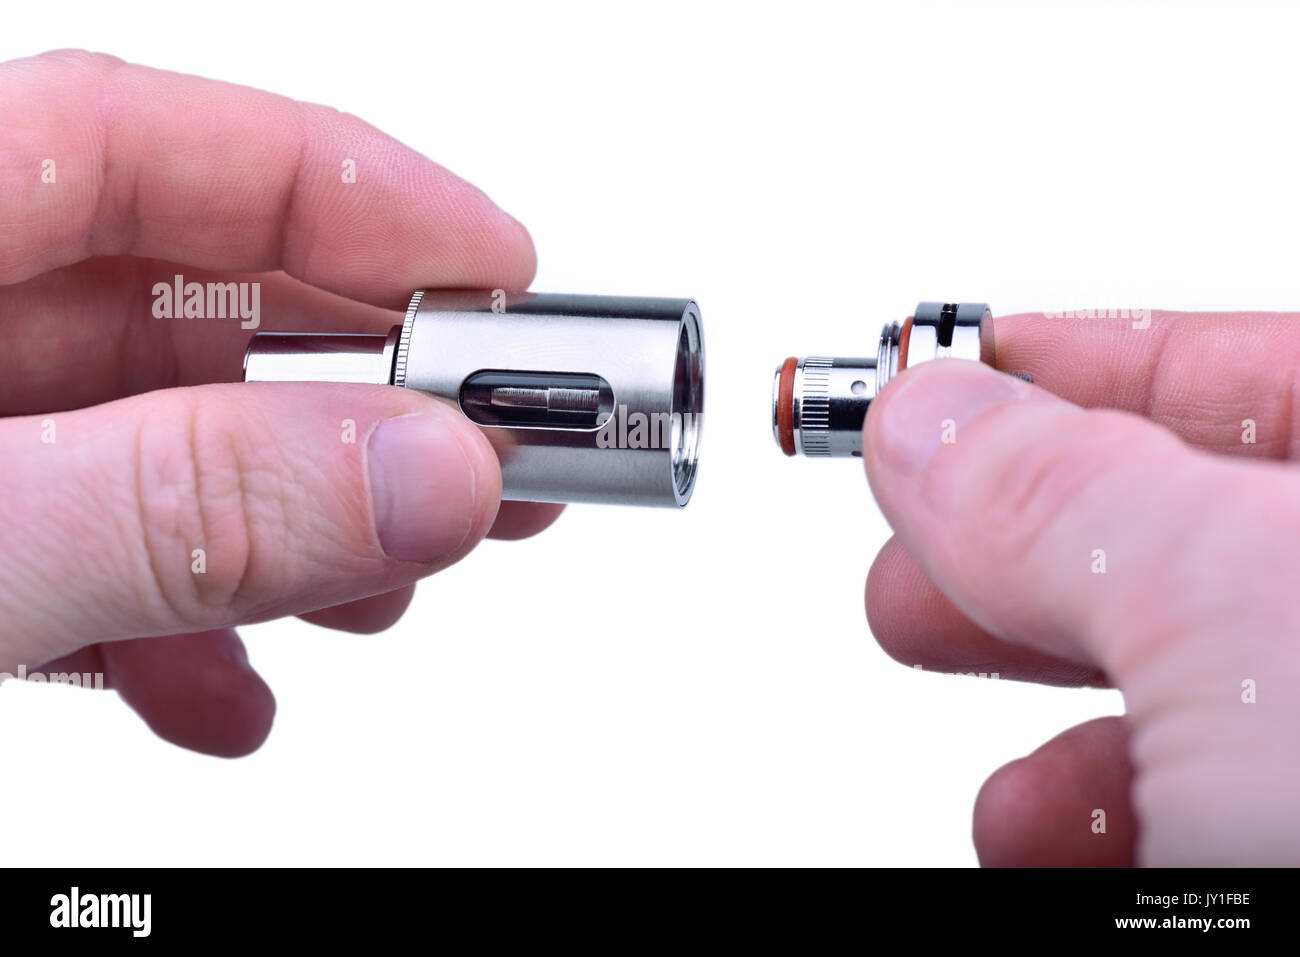 Screwing the coil in sub-ohm tank for e-cig mod - Stock Image